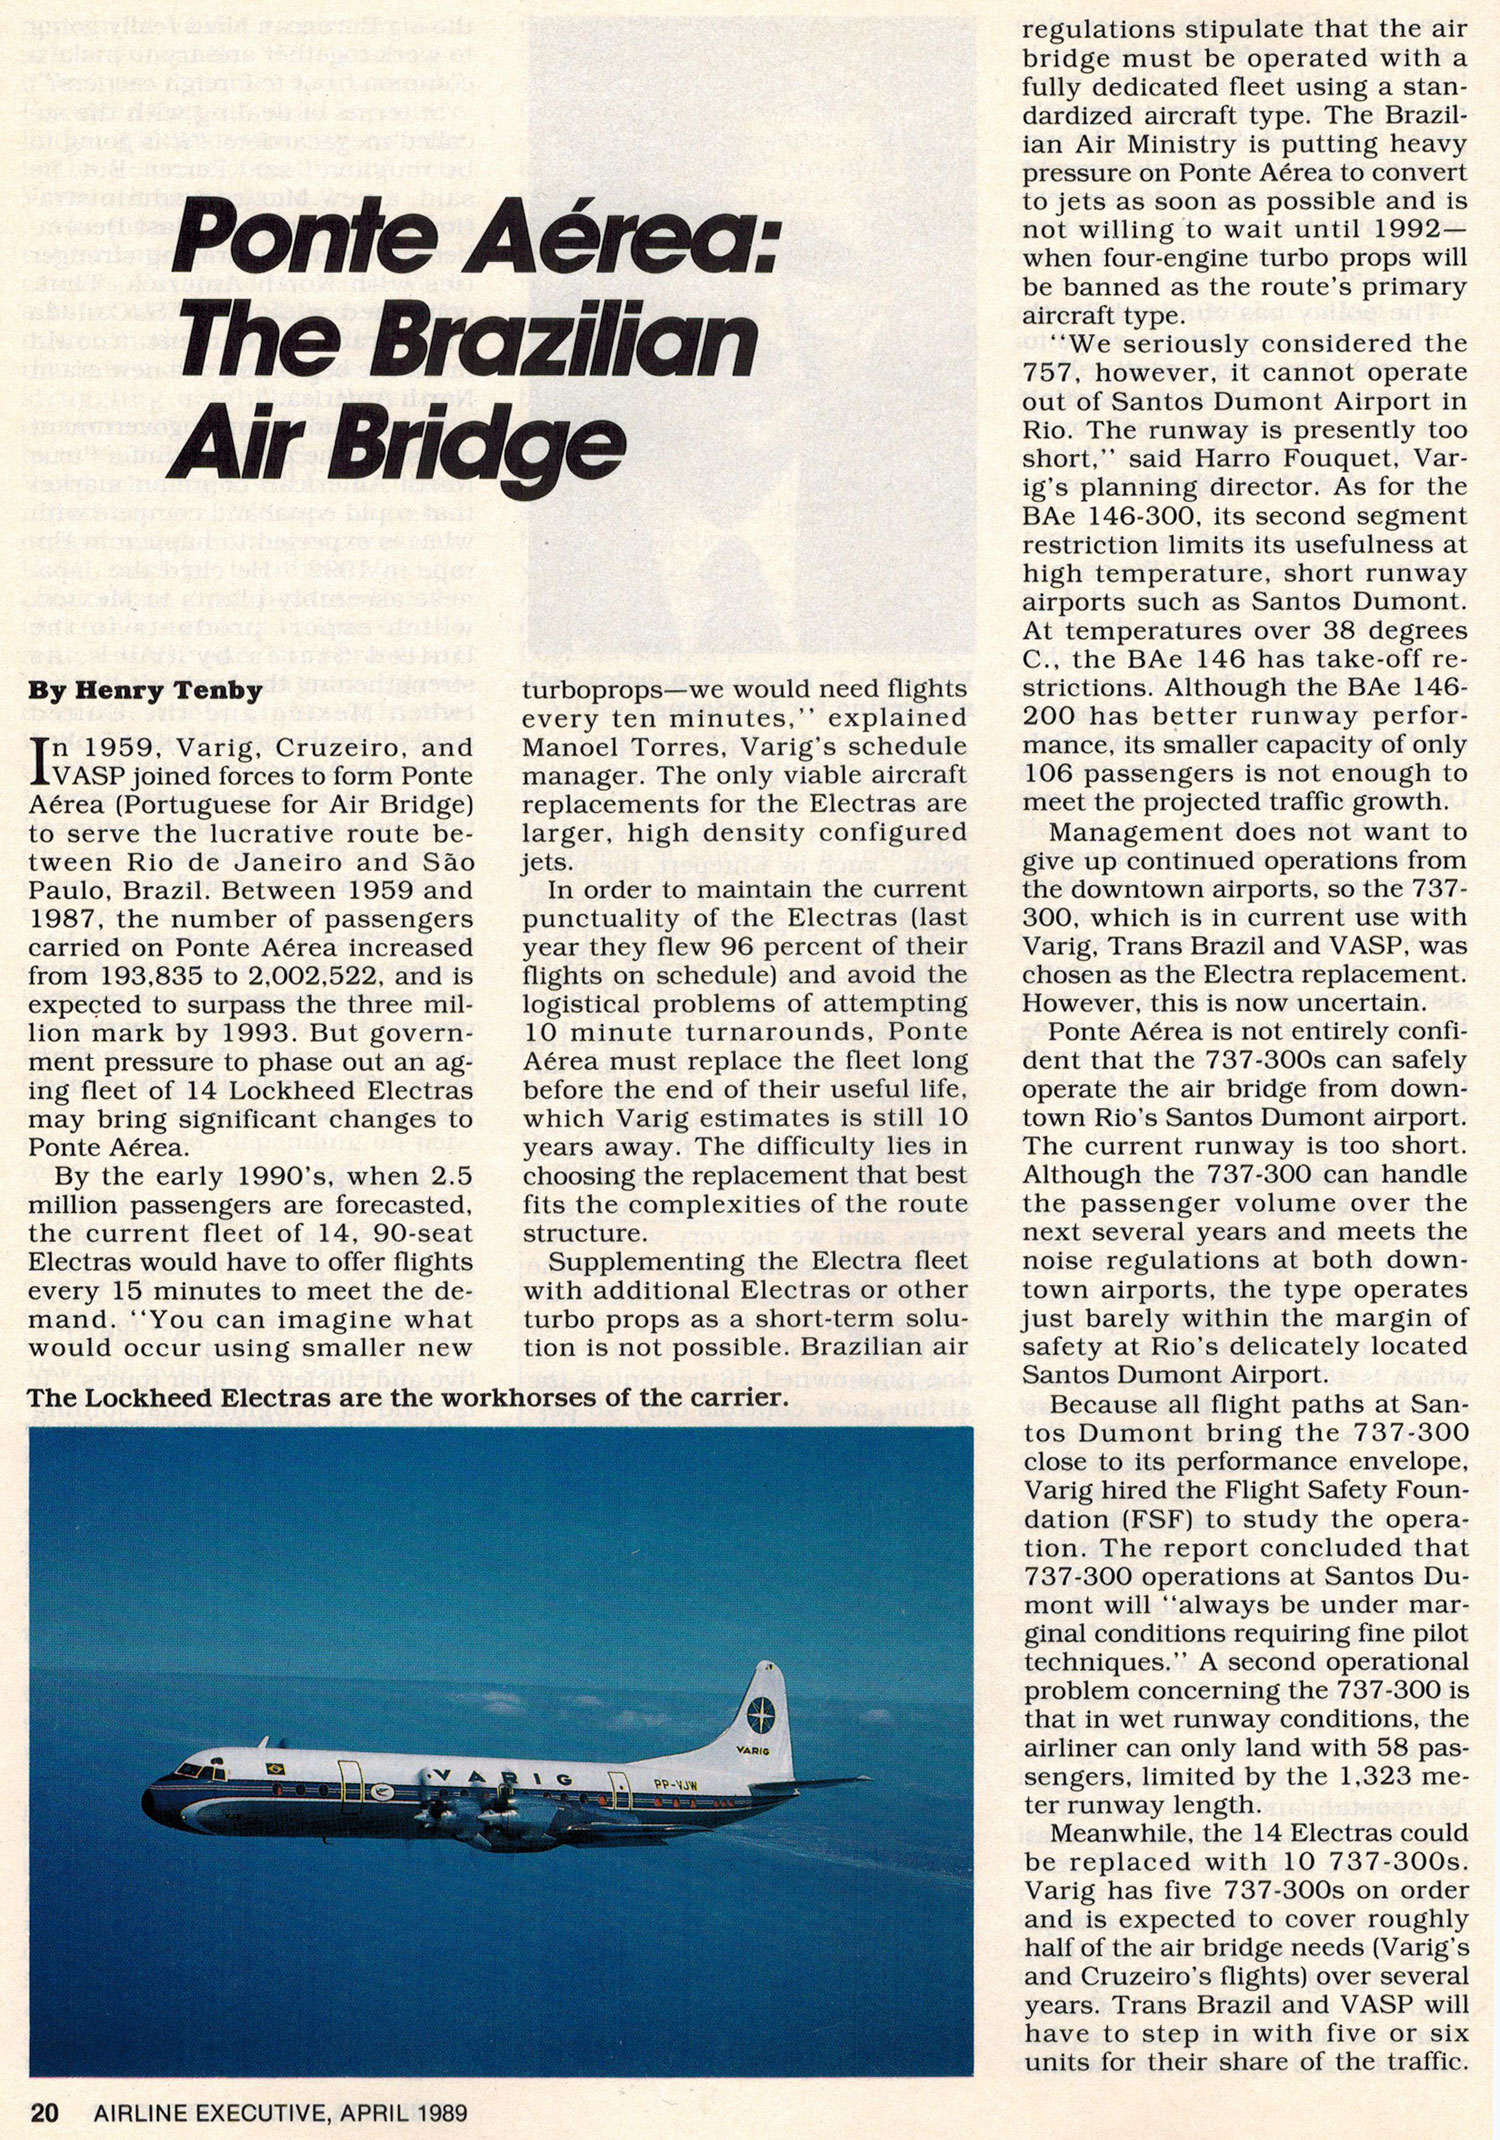 VARIG Ponte Aerea Lockheed Electra operation